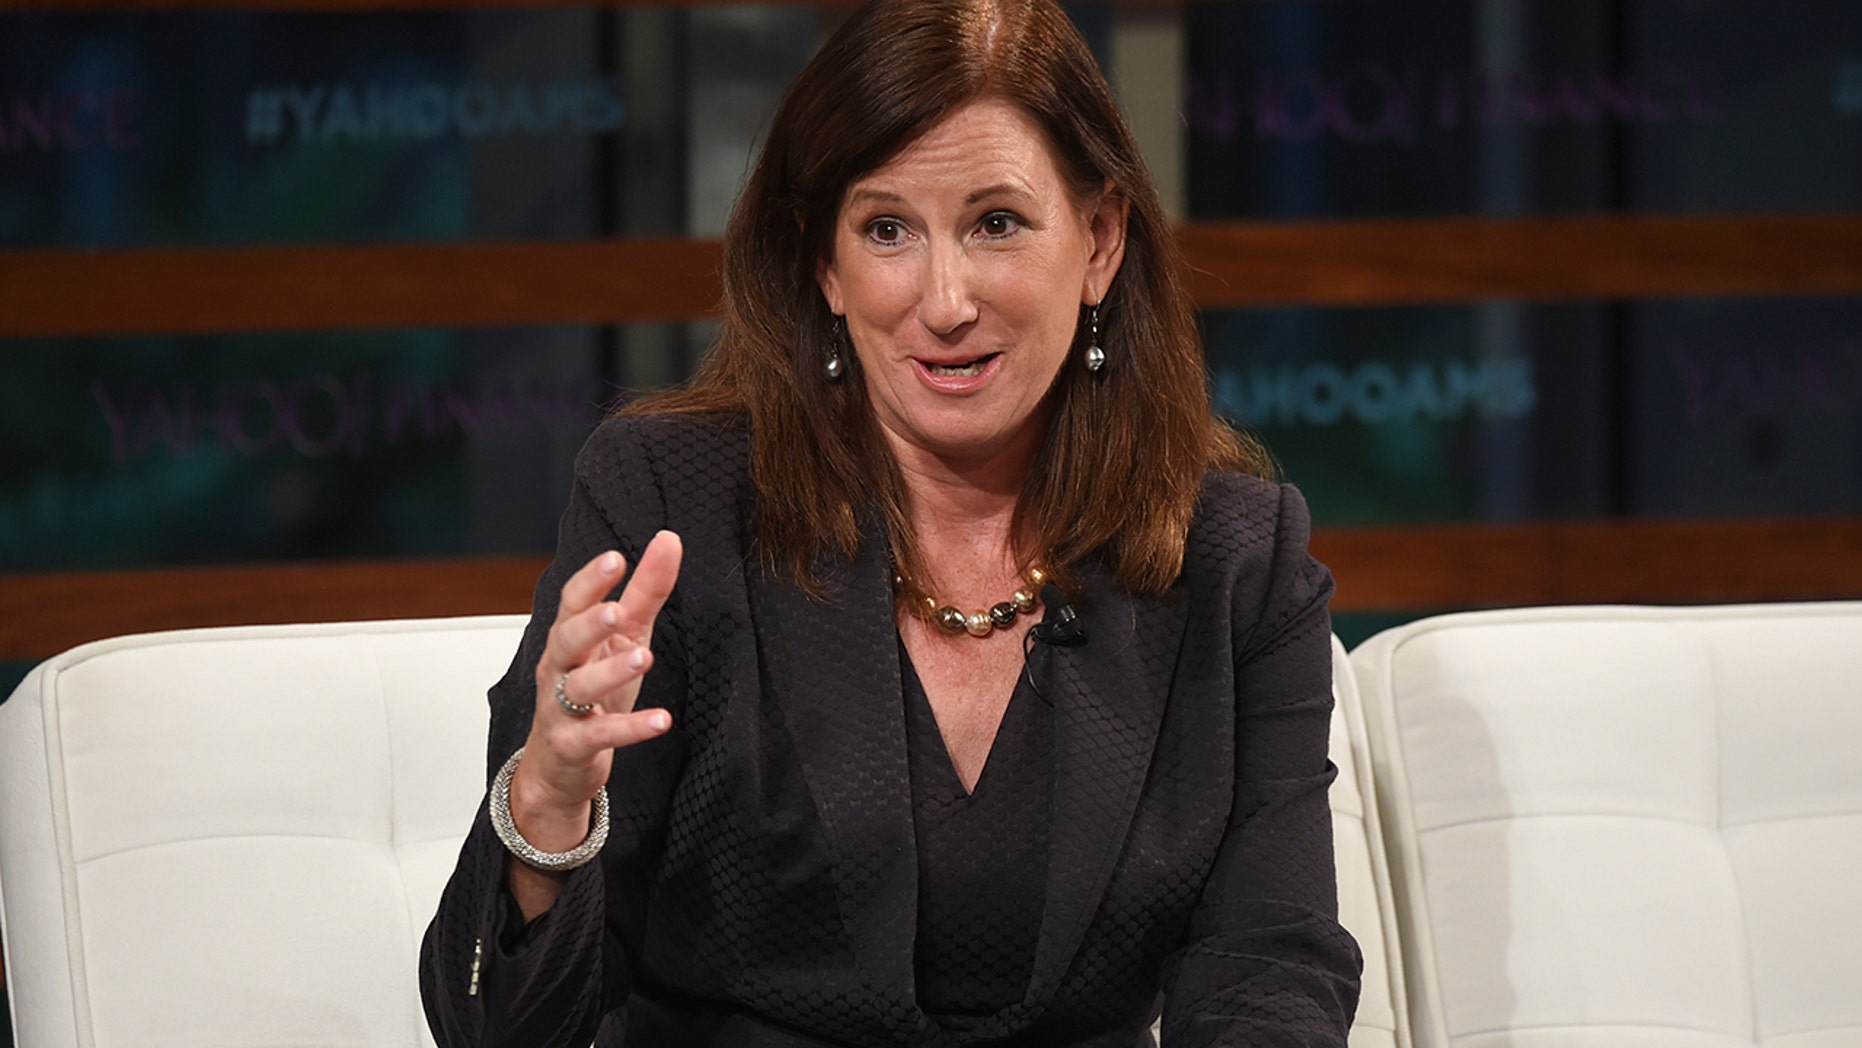 Deloitte CEO Cathy Engelbert participates in the Yahoo Finance All Markets Summit: A World of Change at The Times Center in New York. (Photo by Evan Agostini/Invision/AP, File)